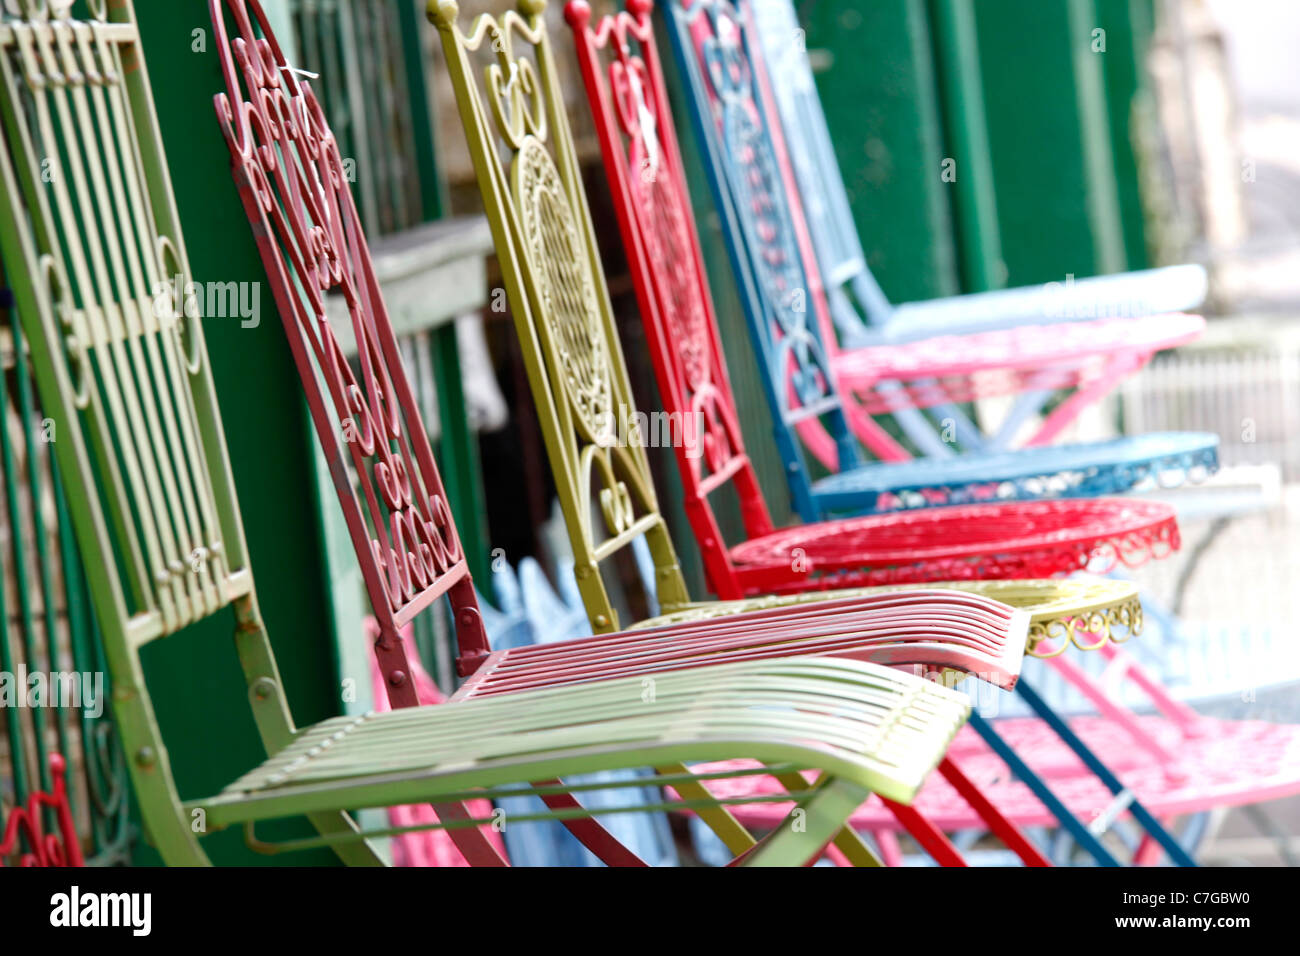 vintage iron chairs on display in a shop front - Stock Image